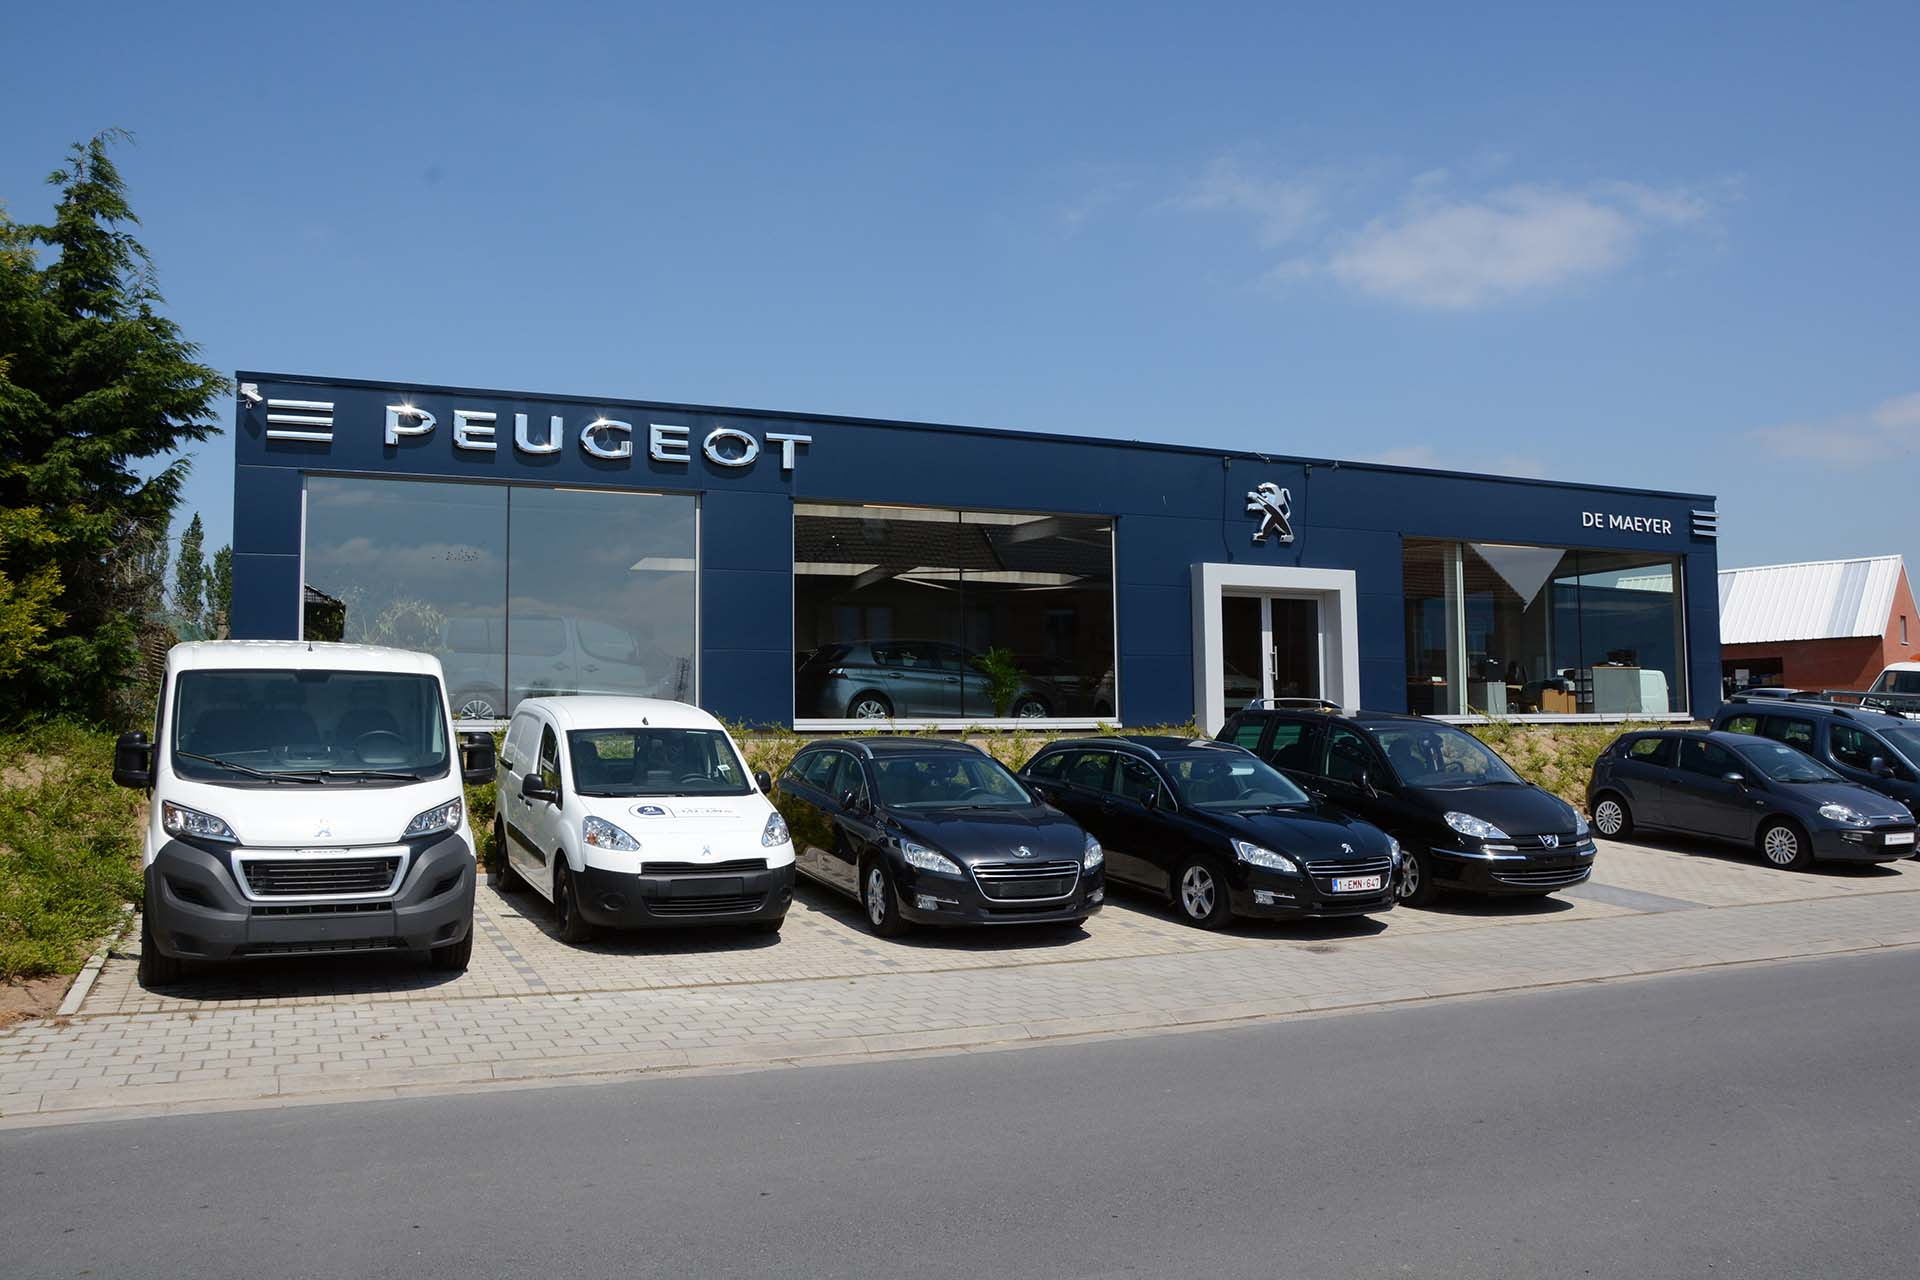 Garage peugeot de maeyer bc construct for Garage peugeot paris 17